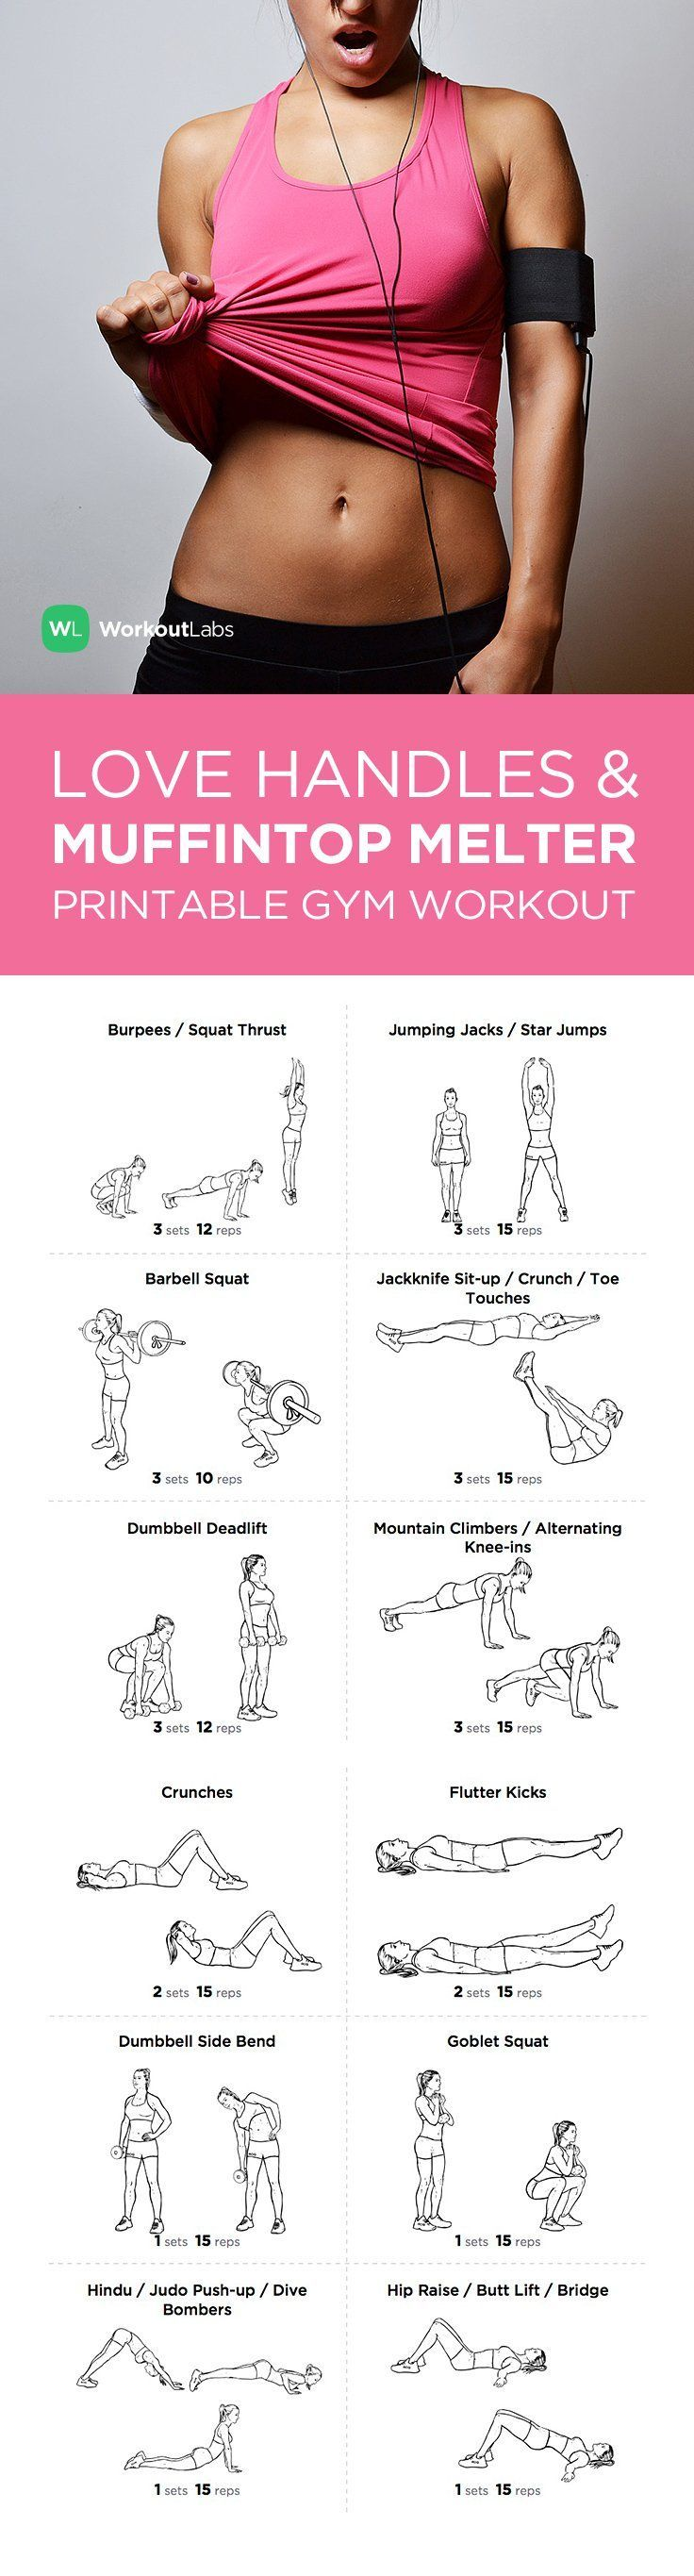 Gym Workout Plan For Beginners Female Pdf | sport1stfuture org